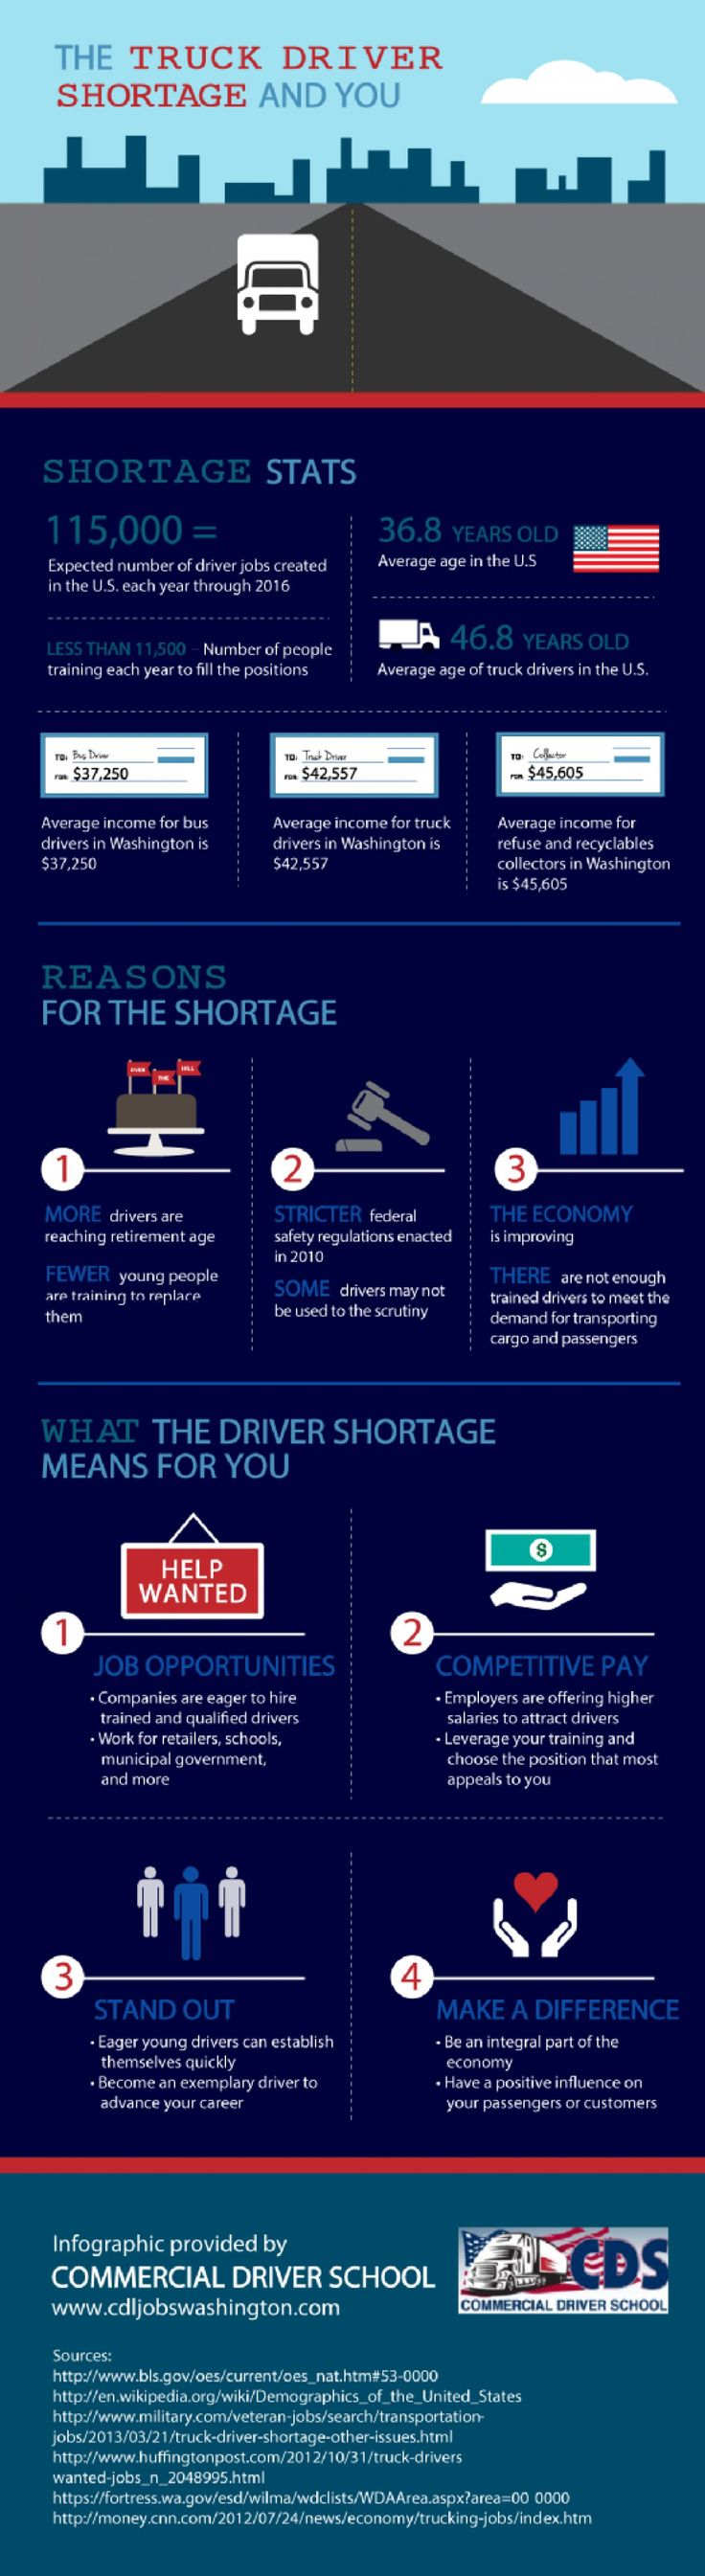 The world needs more #truckers. See why with this #infographic on the Truck Driver Shortage and You!